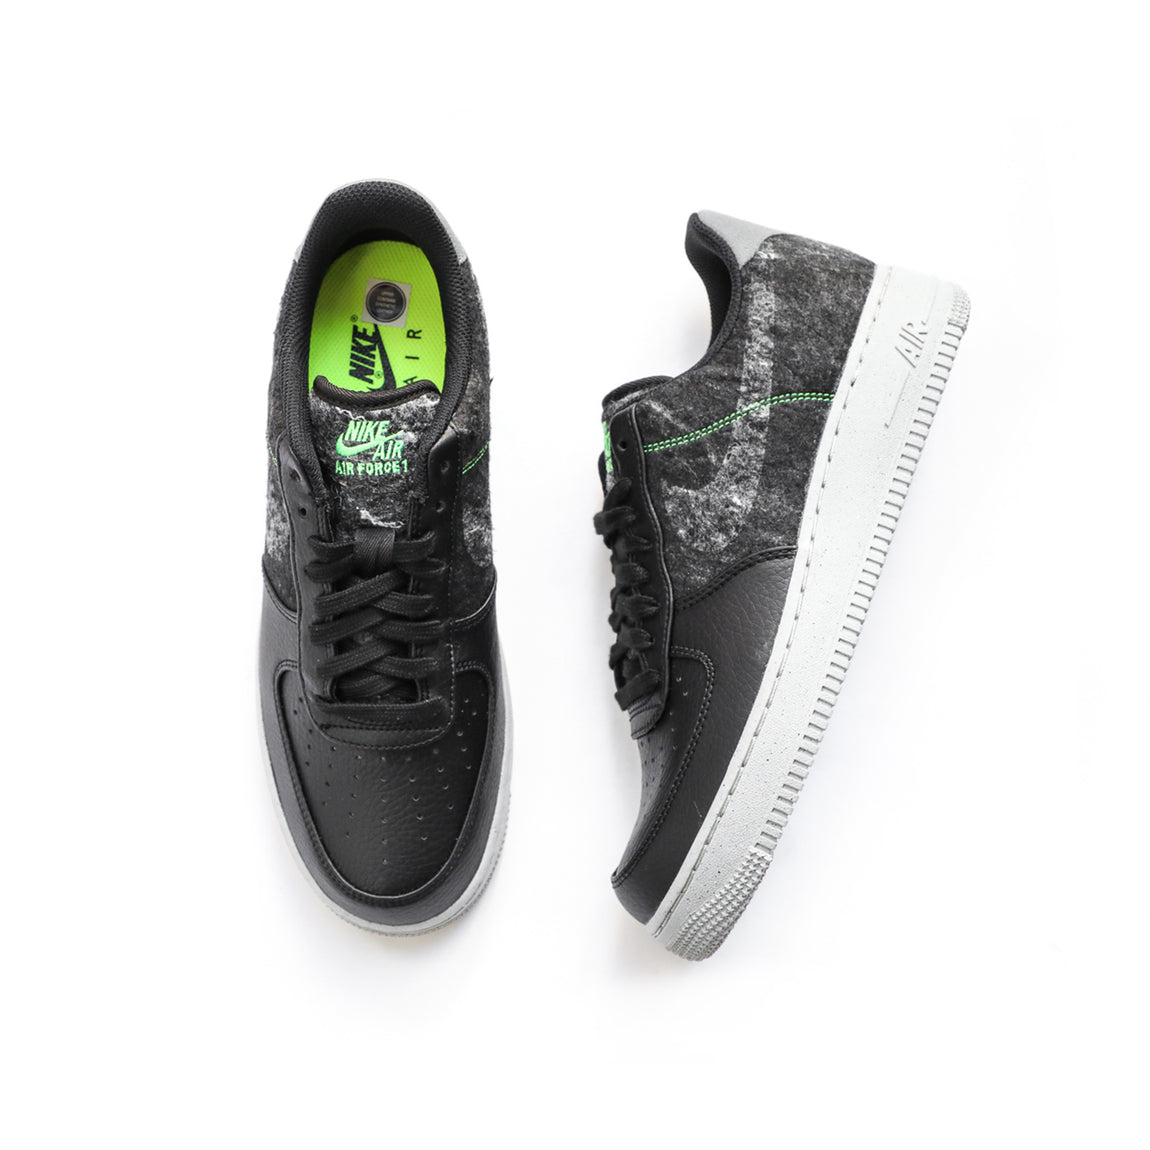 Nike Air Force 1 '07 LV8 (Black/Clear-Electric Green) - Nike Air Force 1 '07 LV8 (Black/Clear-Electric Green) -